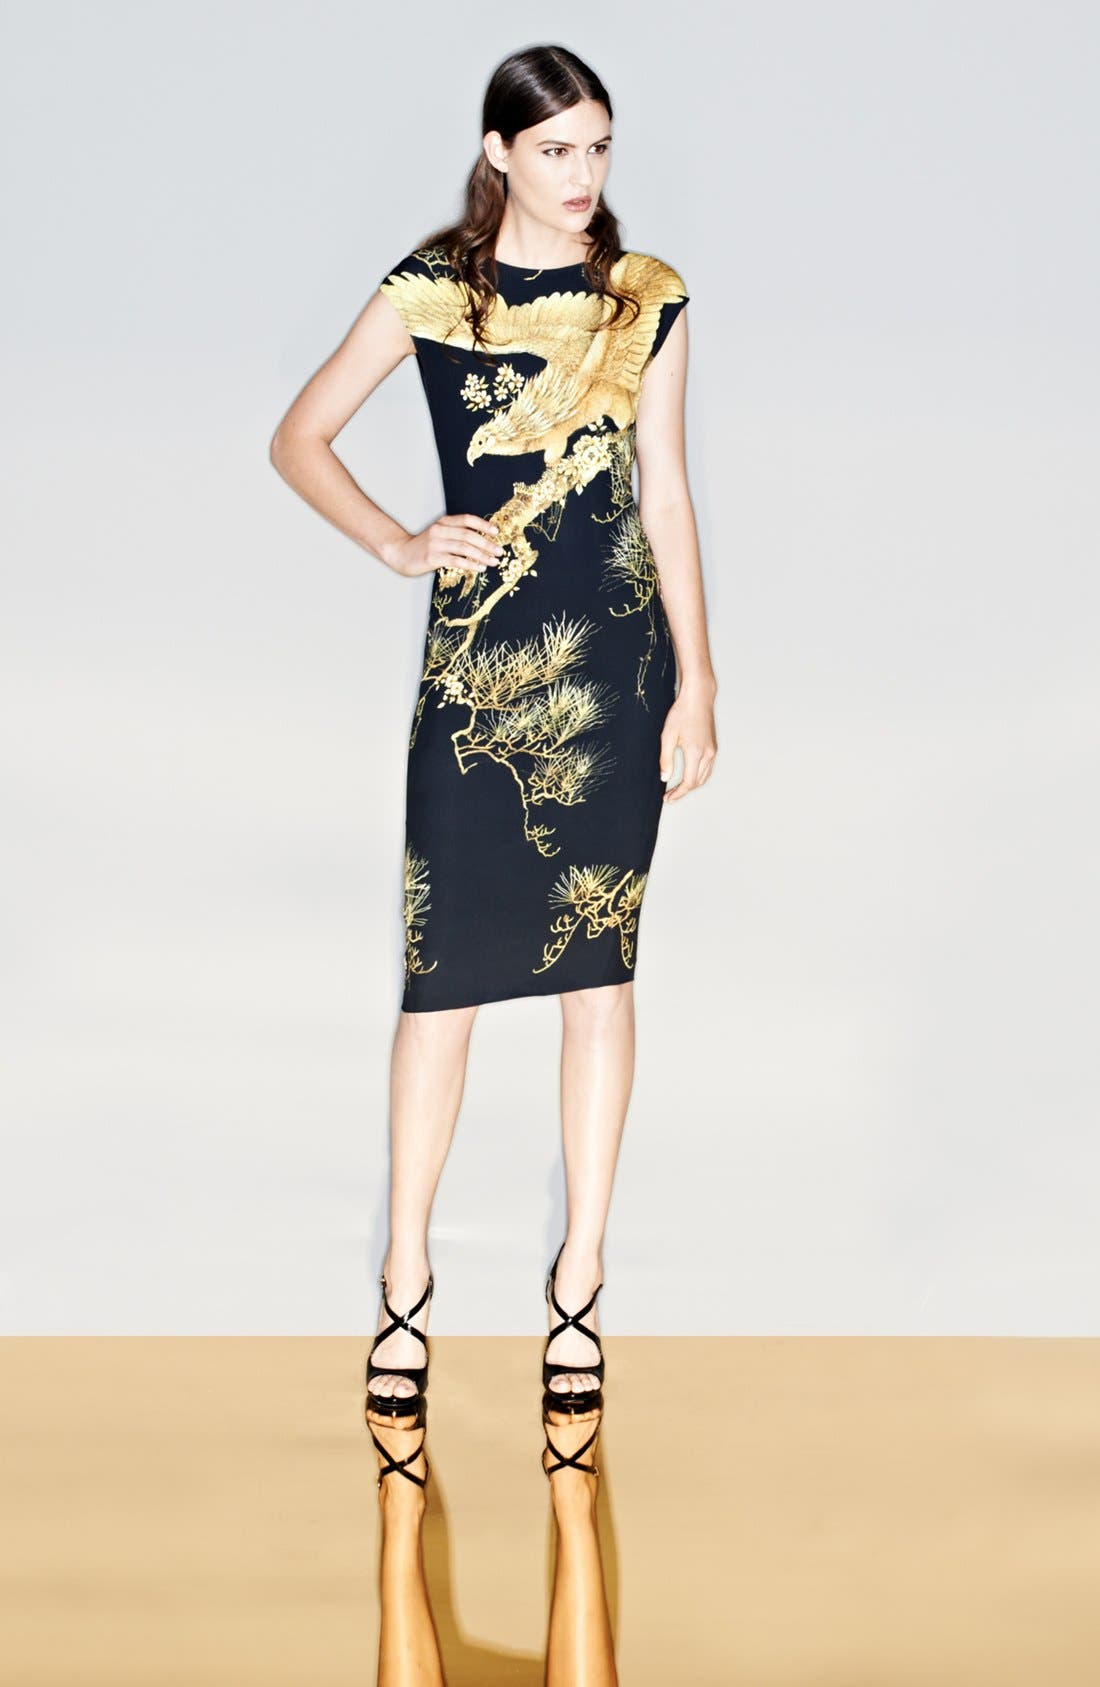 Alternate Image 1 Selected - Roberto Cavalli Dress & Accessories